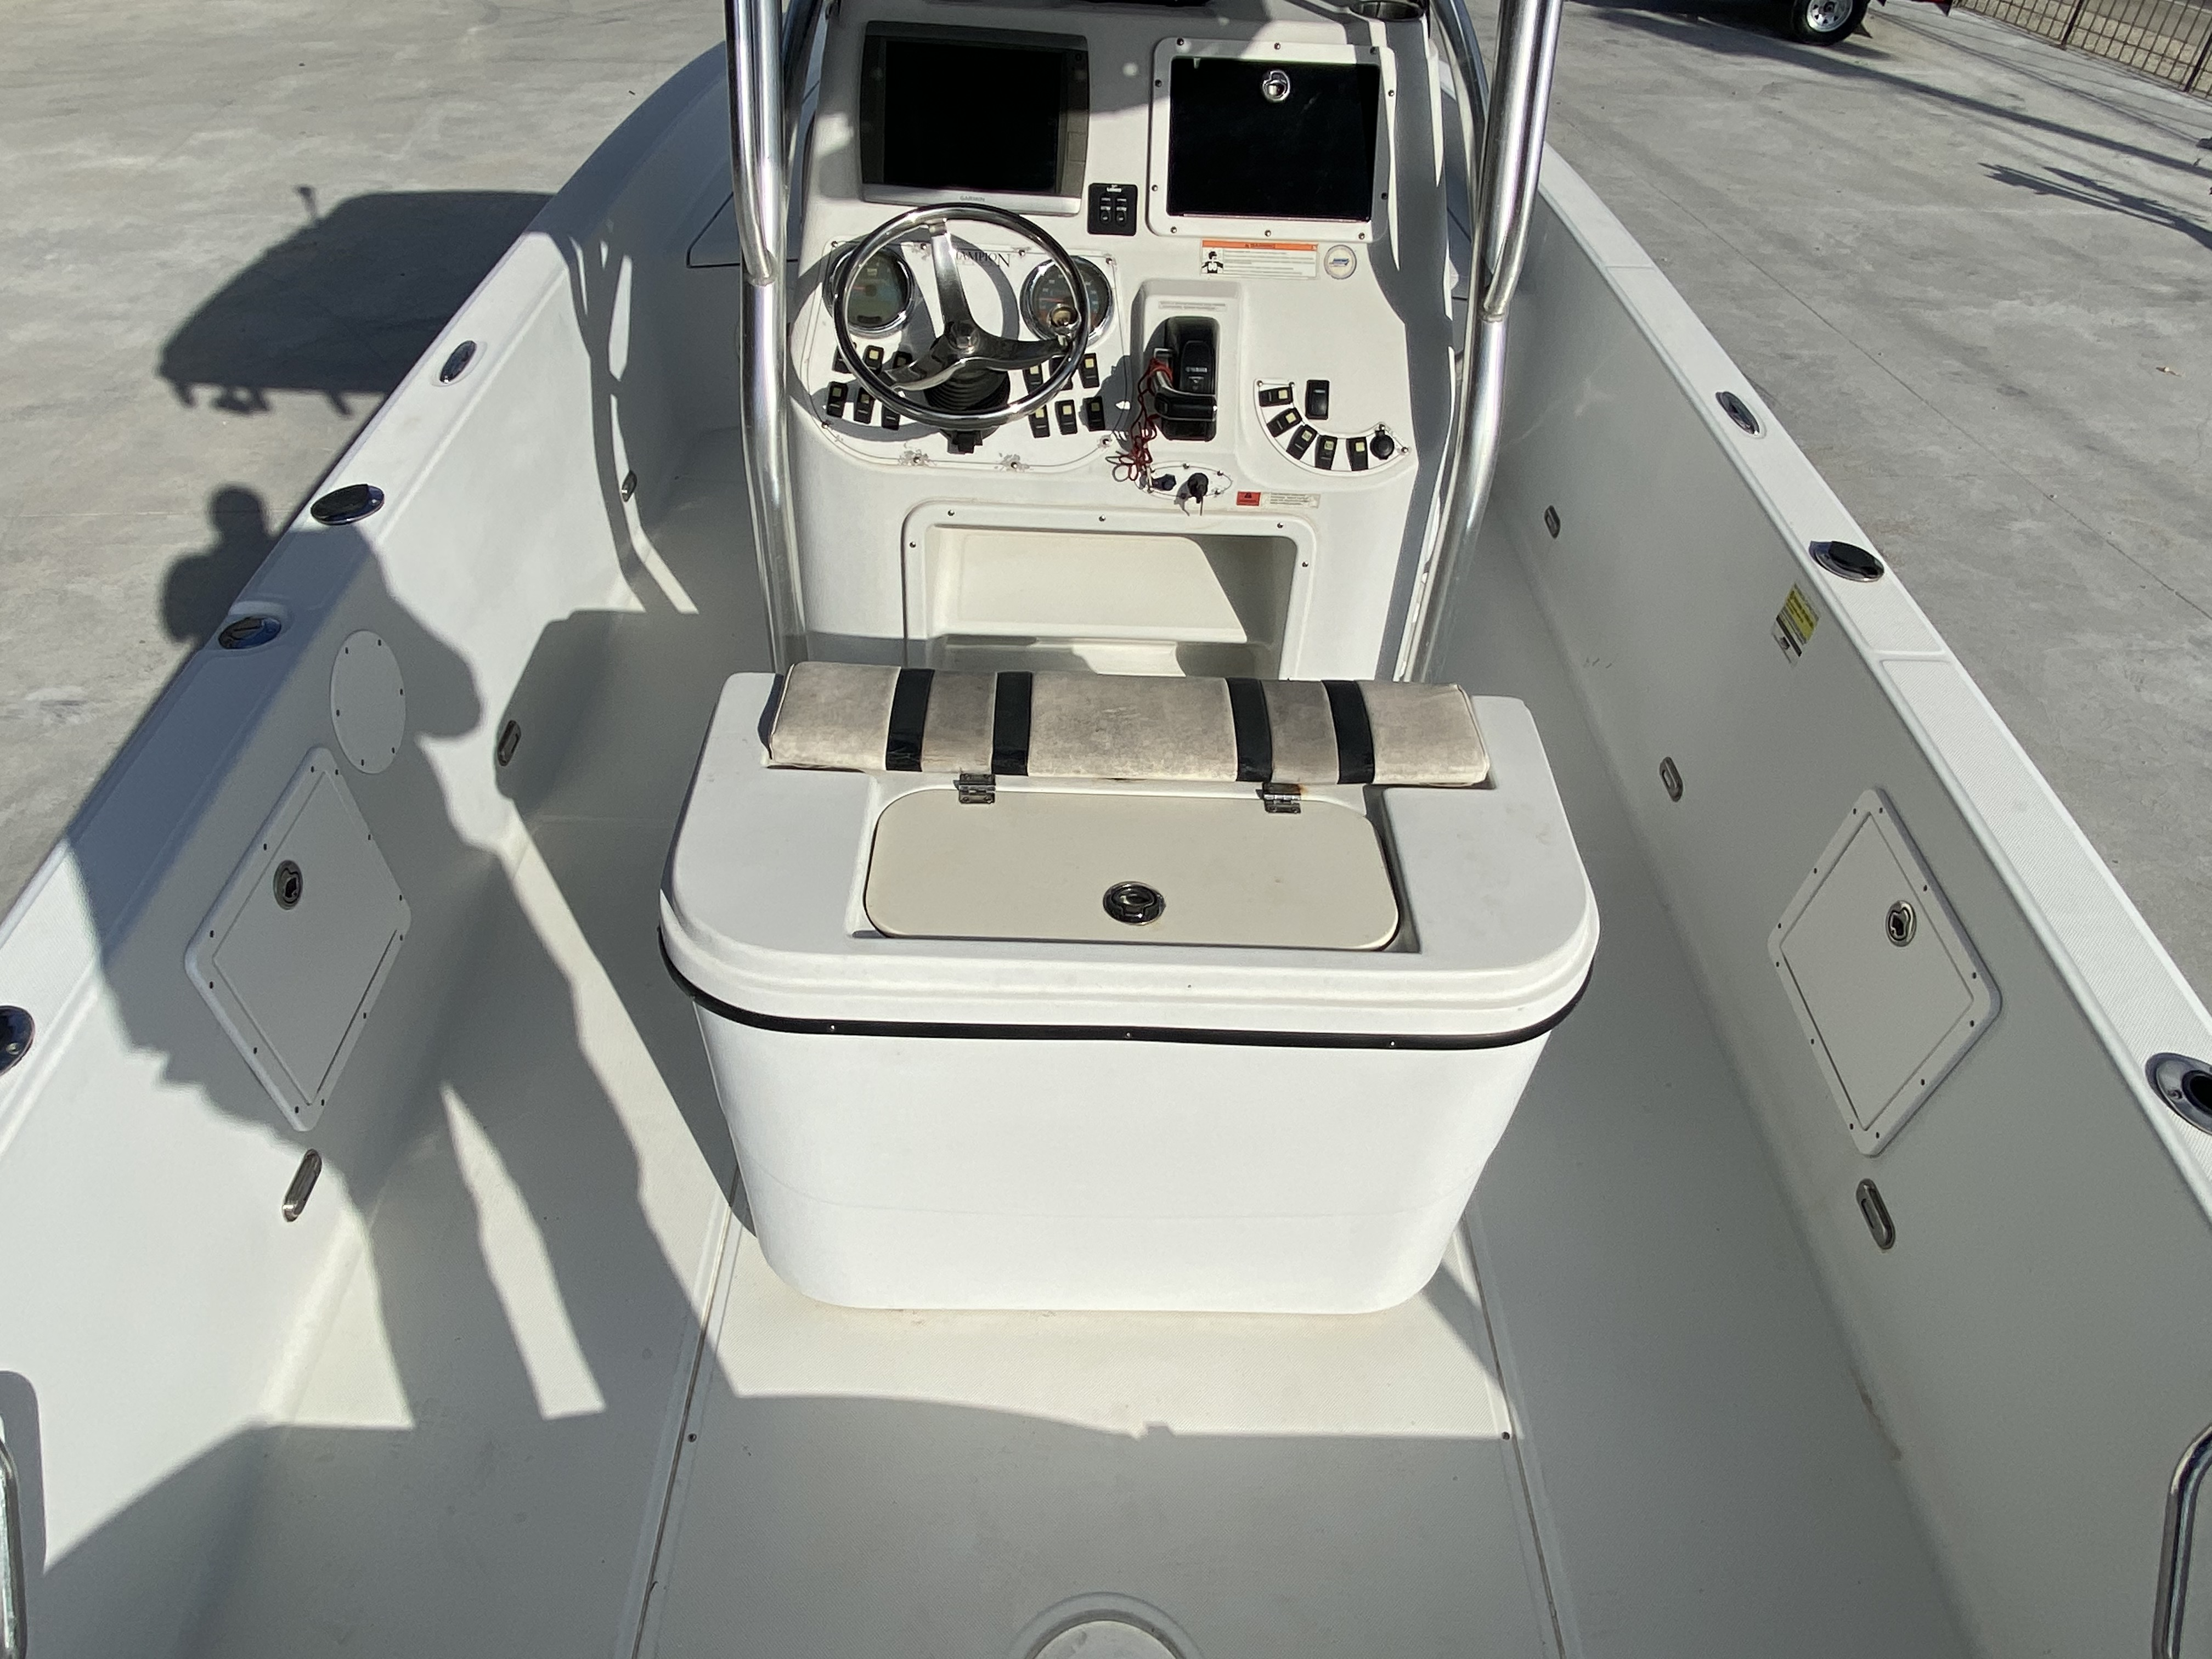 2010 Champion boat for sale, model of the boat is 25 BAY & Image # 19 of 25